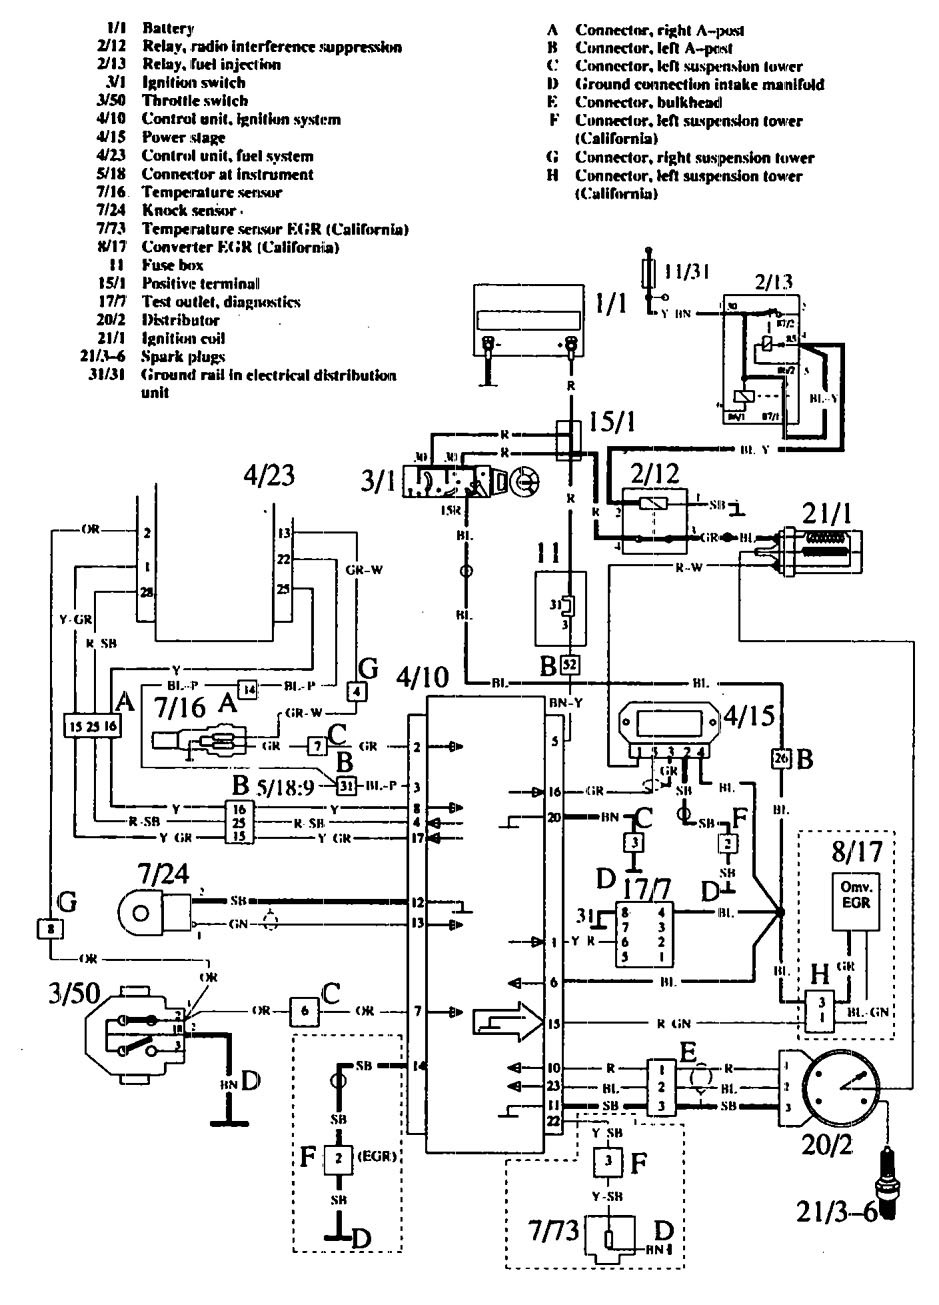 1985 Gmc Jimmy Wiring Diagram Will Be A Thing 1998 Sierra Schematic 1990 Acura Integra Ignition Imageresizertool Com Truck 2000 S10